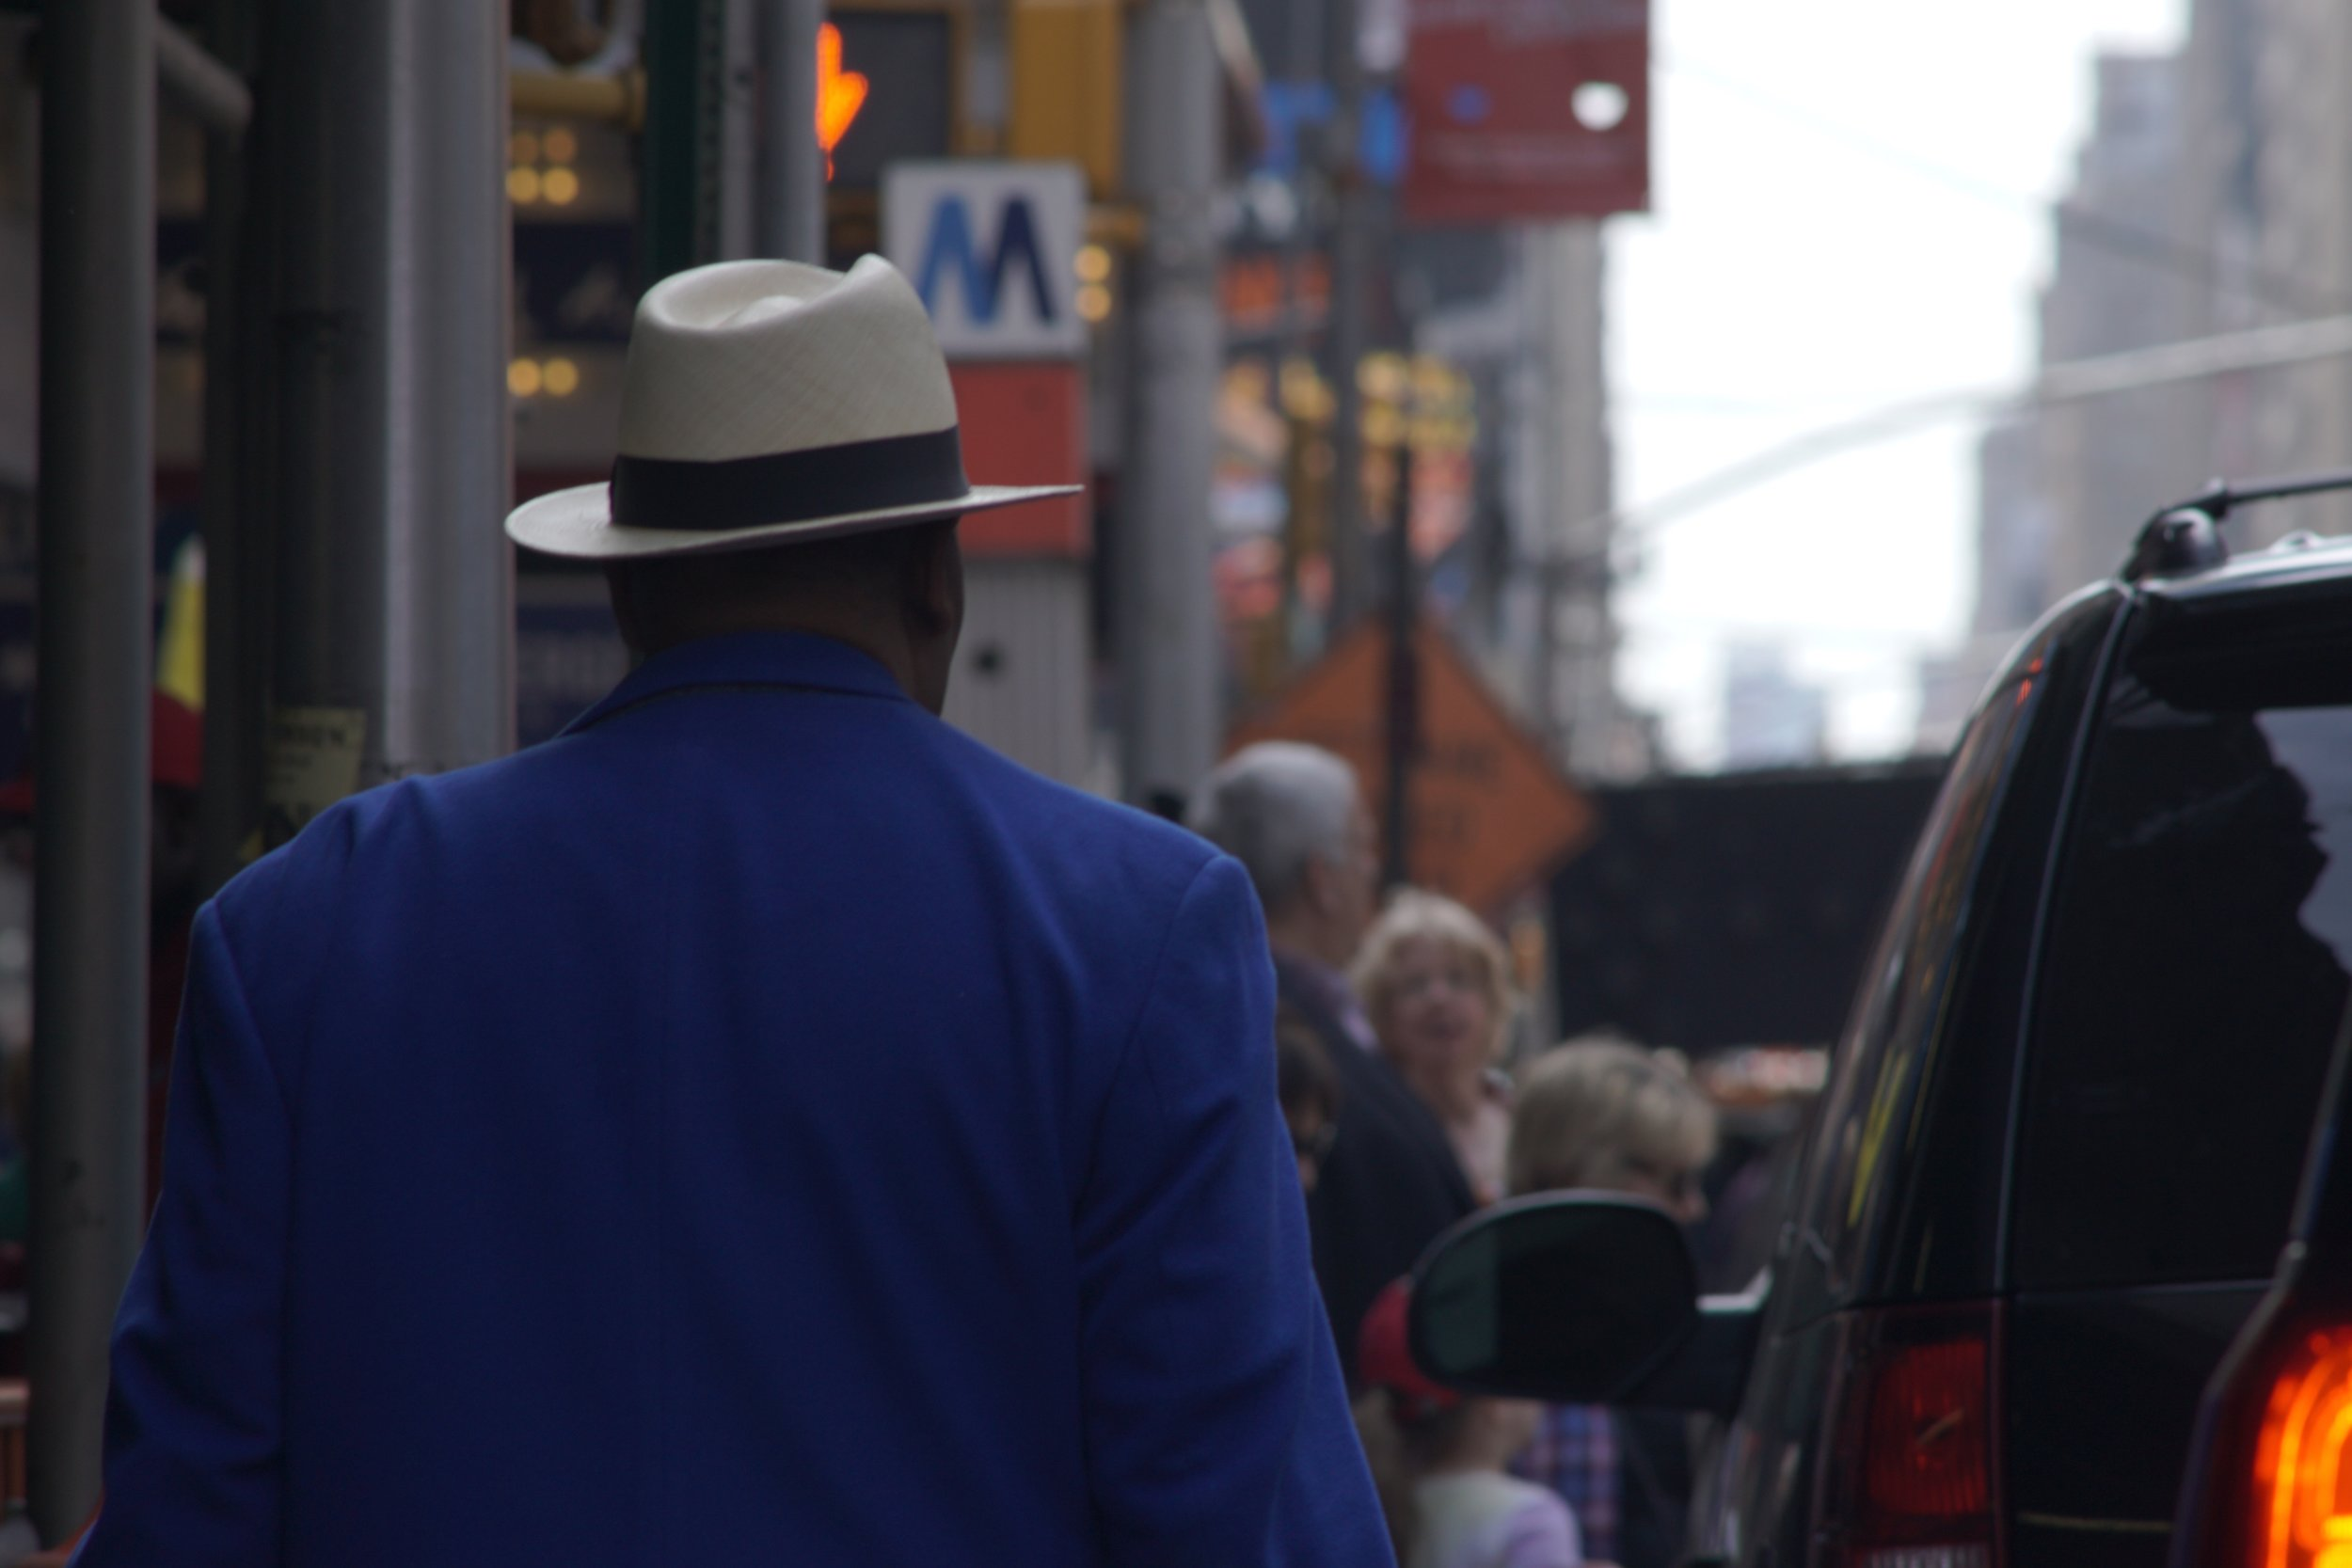 Street Photography with A Telephoto Lens, 70s style